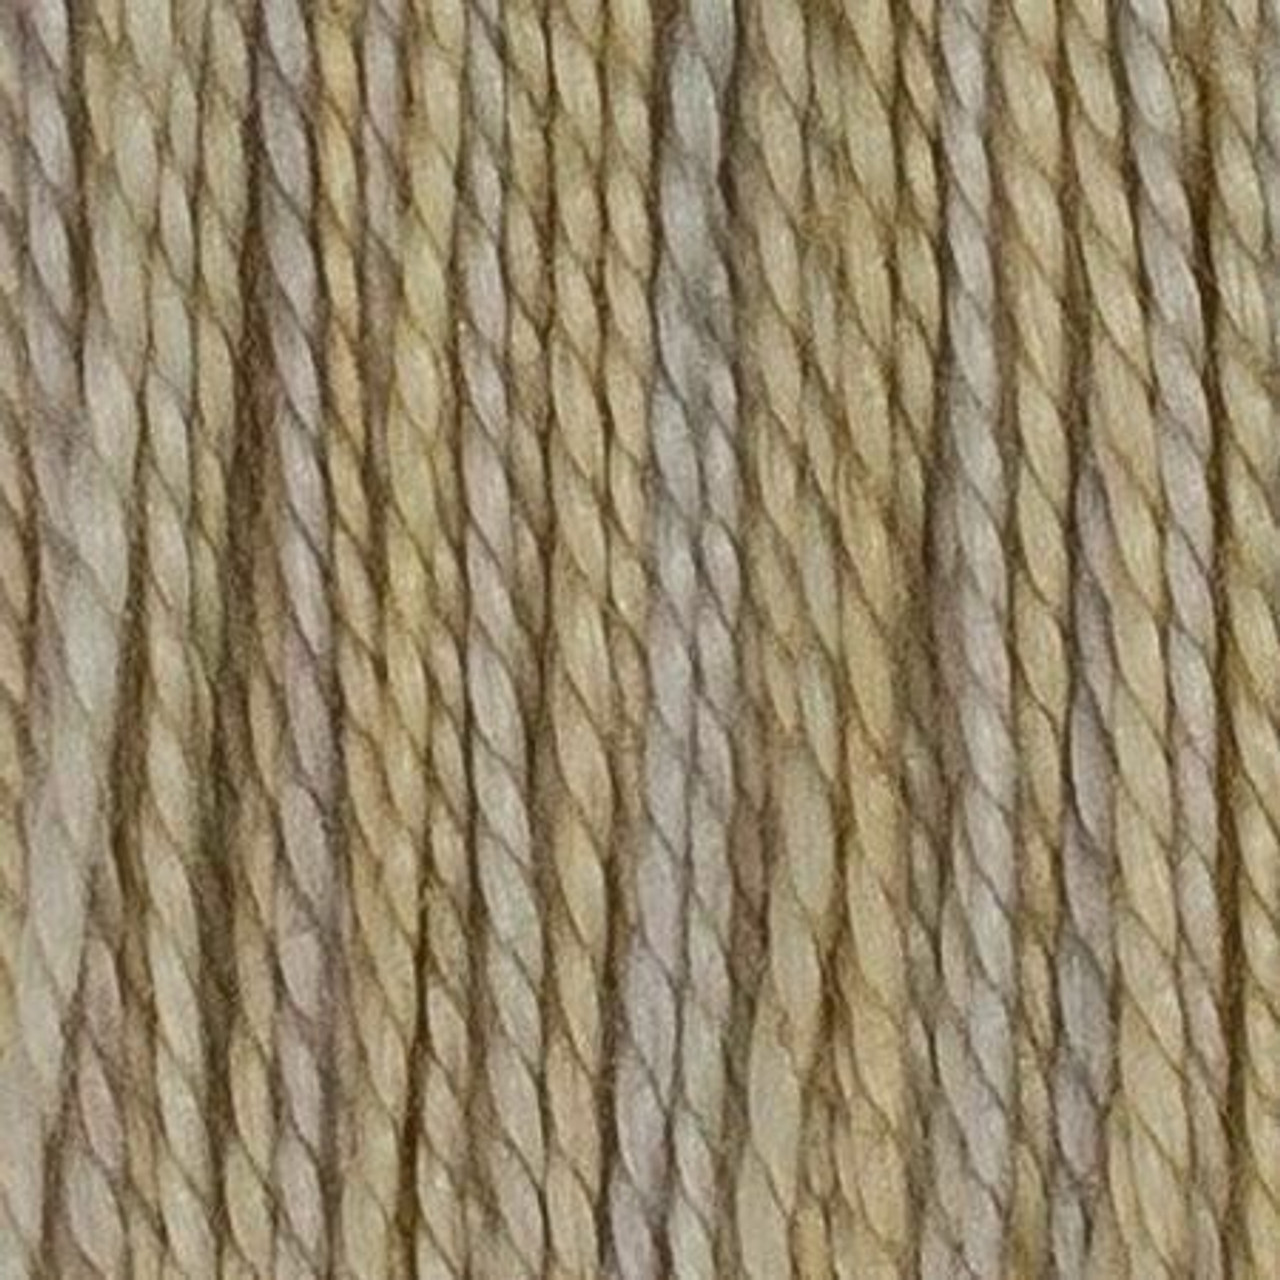 House of Embroidery : 8wt Perle Cotton - Desert Sands (42B)